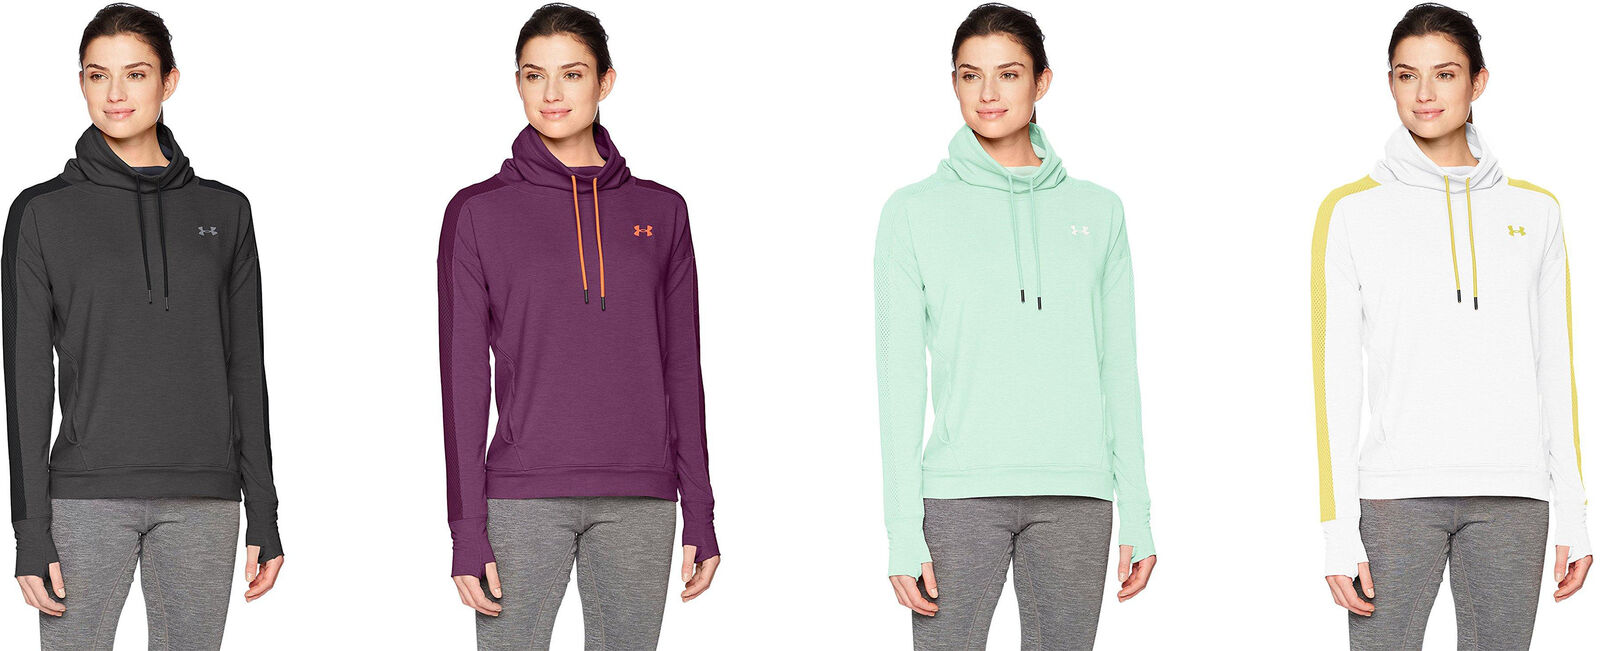 df56729872 Under Armour Women's Featherweight Fleece Funnel Neck, 5 Colors | eBay